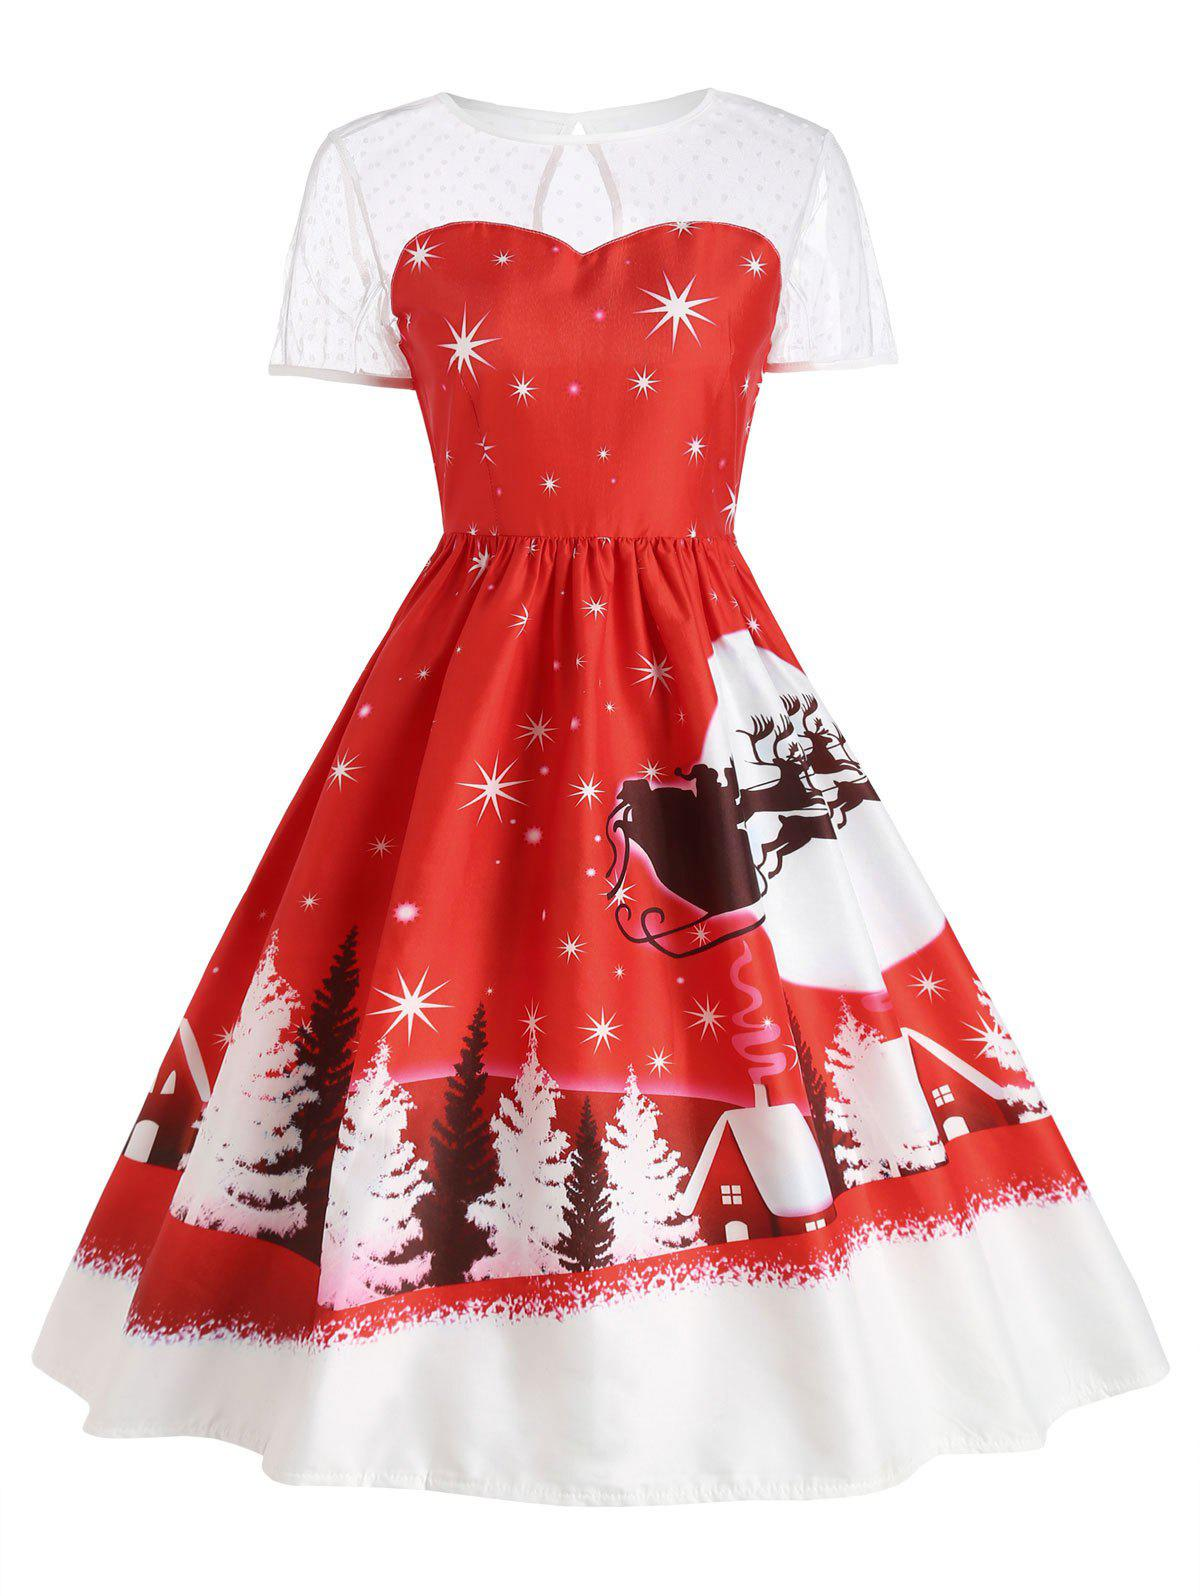 14a93b738ffa1 Latest Santa Claus Deer Vintage Christmas Dress